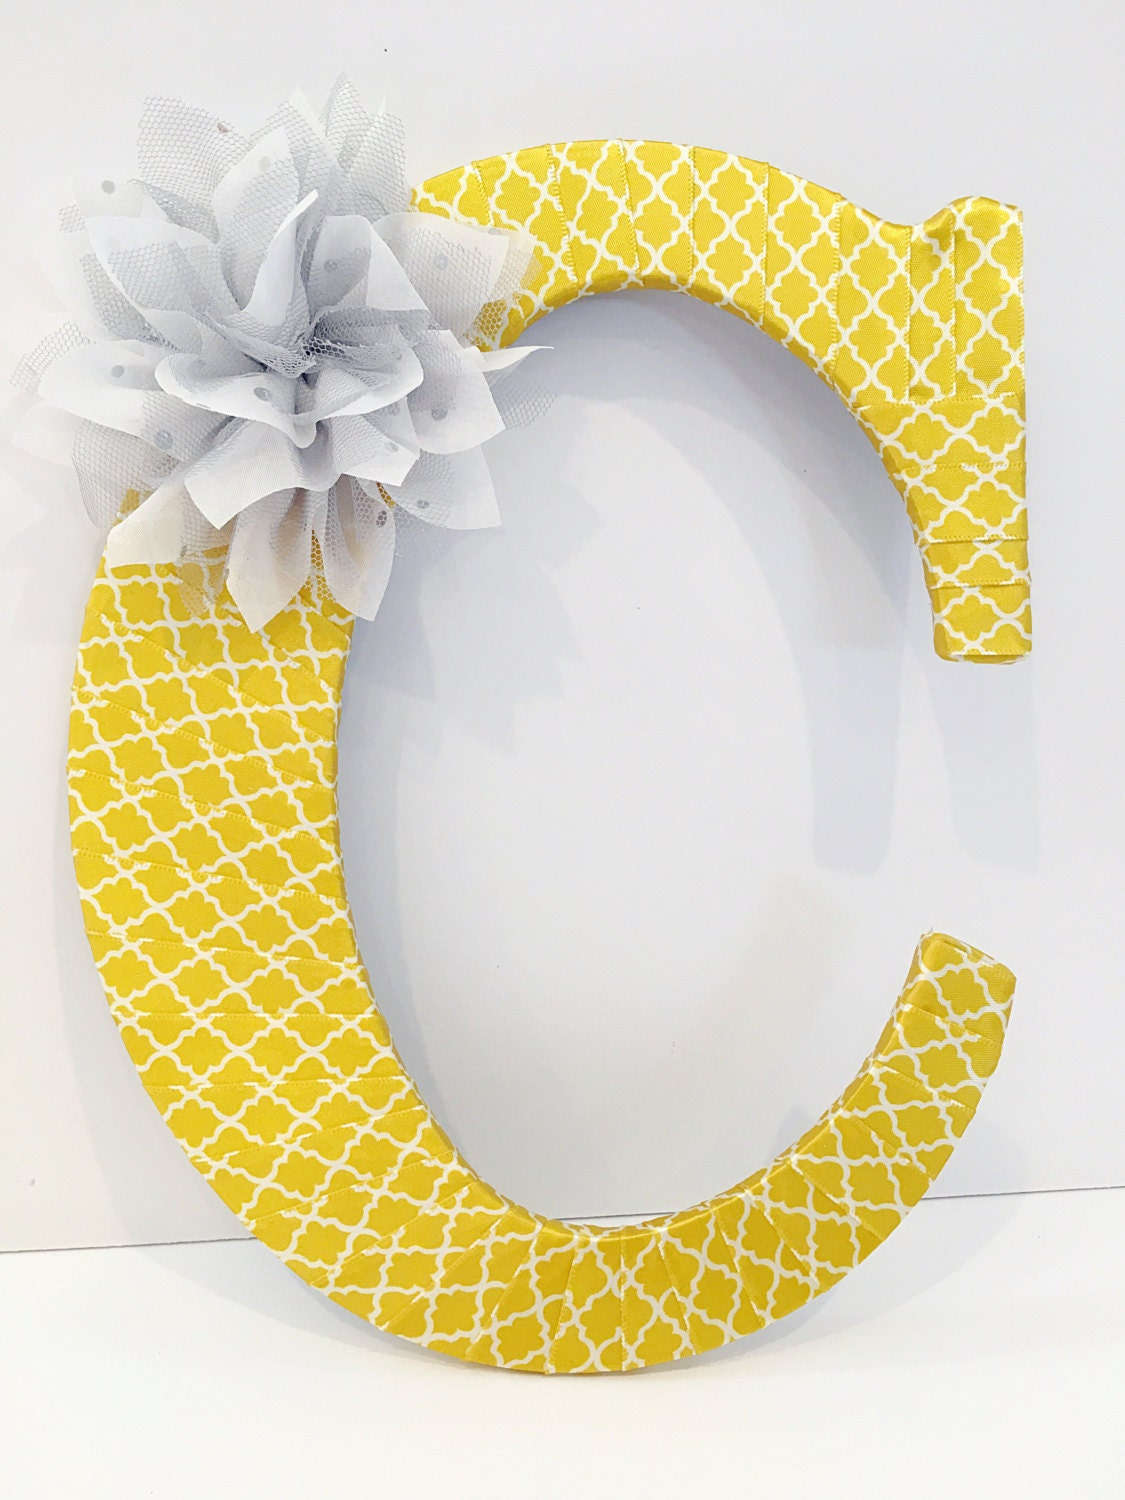 Yellow Nursery Decor, Yellow Home Decor, Yellow and Grey Baby Shower, Front Door Decor, Wreath Initial, Initial Decor, Decorative Letters